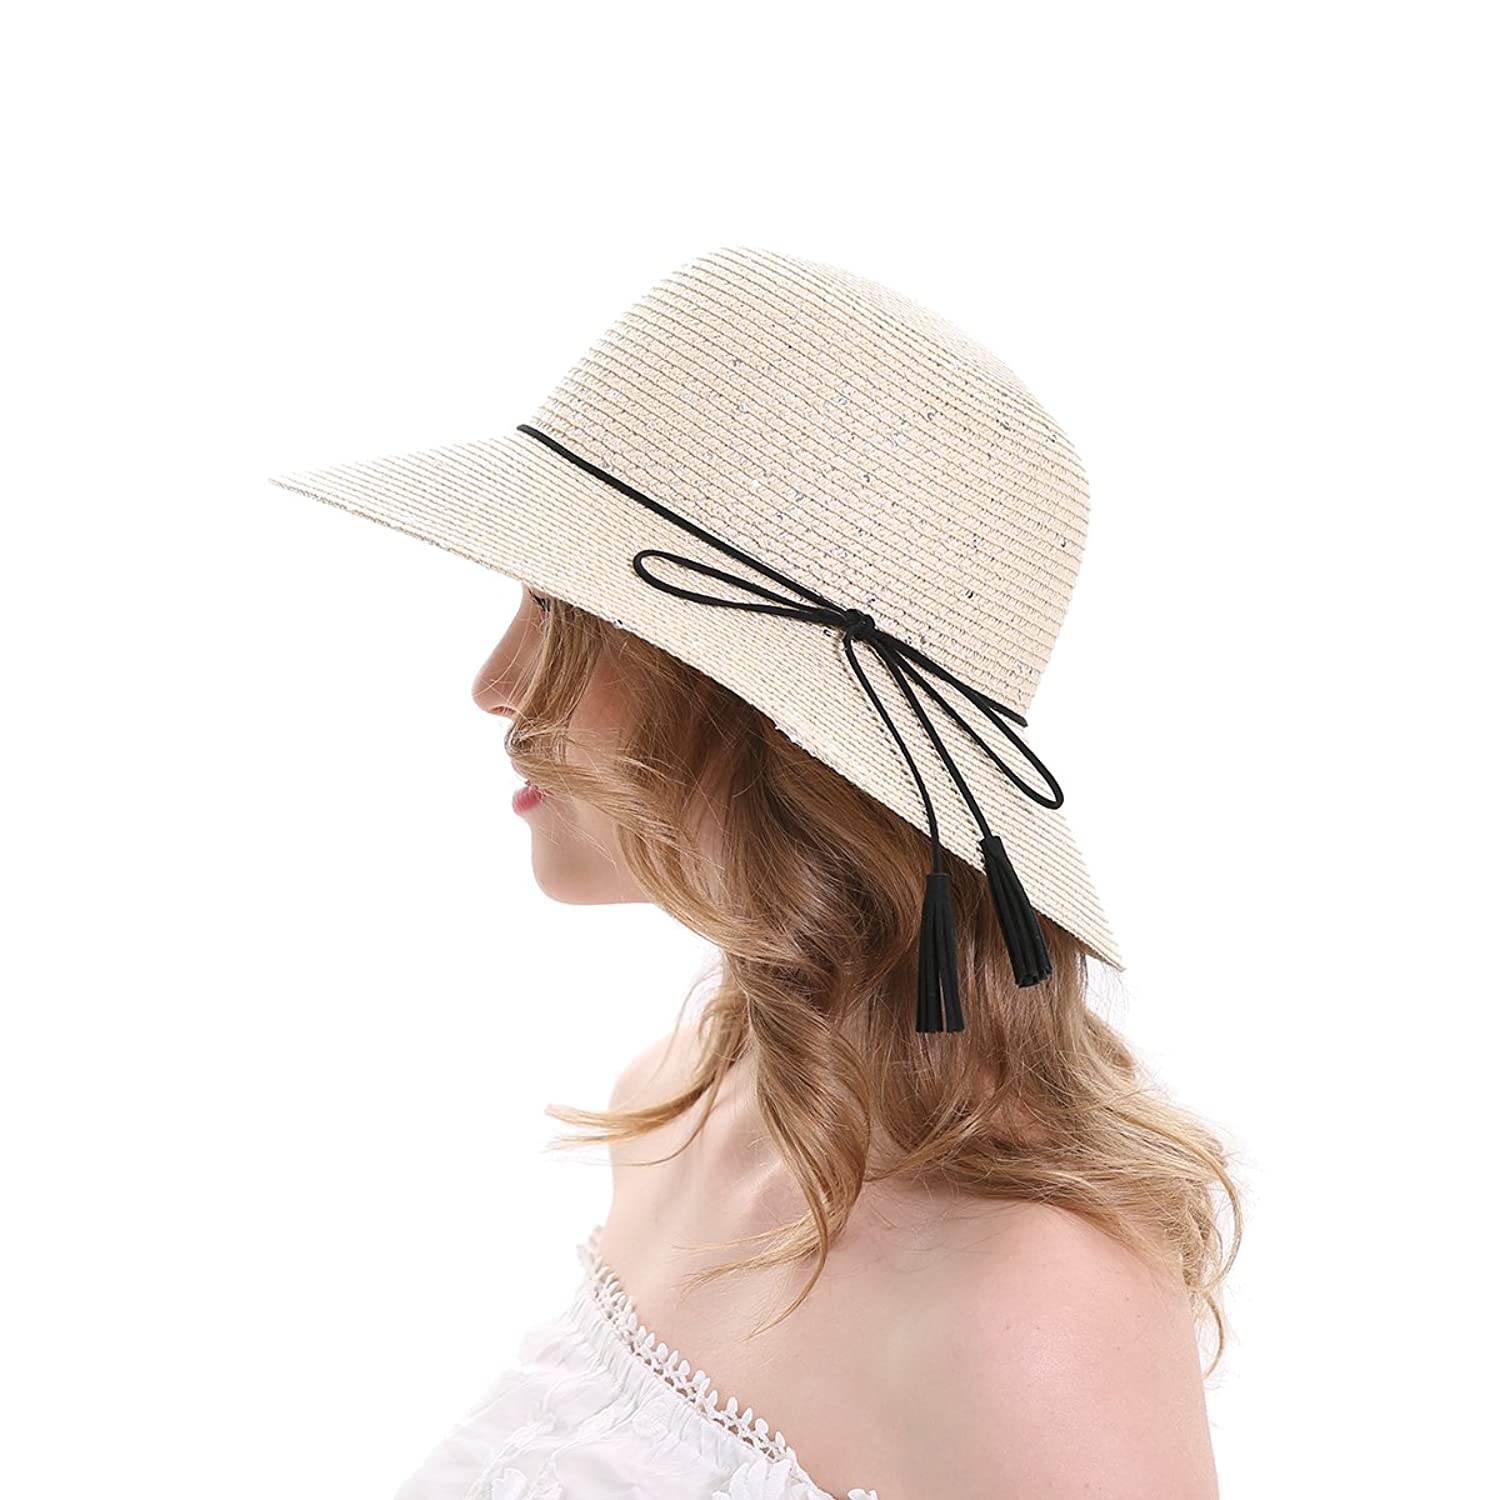 bf829a10e MEEFUR Casual Summer Beach Hats Rope Solid Bucket Cord Paper Straw Sun Hat  Sequins Foldable Roll up Wide Brim UV Protection Cap for Women Beige at  Amazon ...